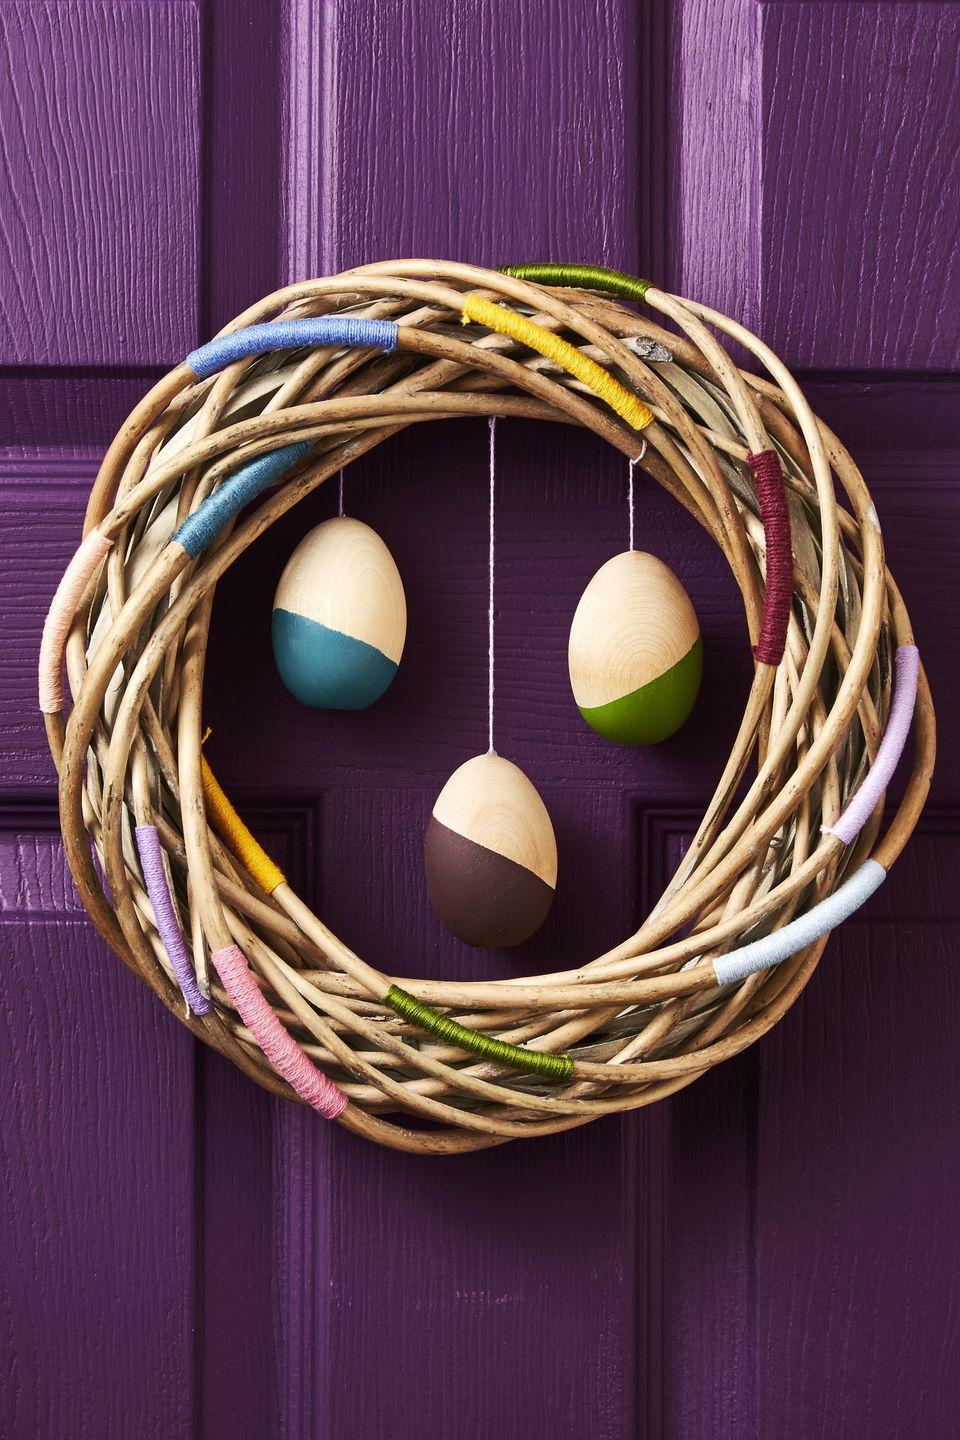 """<p>Spice up an ordinary grapevine wreath by wrapping colorful embroidery thread around branch sections. Add movement to this door decoration with suspended wooden eggs in the center — hot-glue thread to the backs and then tie in place.</p><p><a class=""""link rapid-noclick-resp"""" href=""""https://www.amazon.com/Bulk-Buy-Darice-Grapevine-Wreath/dp/B0033M0HG4?tag=syn-yahoo-20&ascsubtag=%5Bartid%7C10055.g.2217%5Bsrc%7Cyahoo-us"""" rel=""""nofollow noopener"""" target=""""_blank"""" data-ylk=""""slk:BUY GRAPEVINE WREATH"""">BUY GRAPEVINE WREATH</a> <br></p>"""